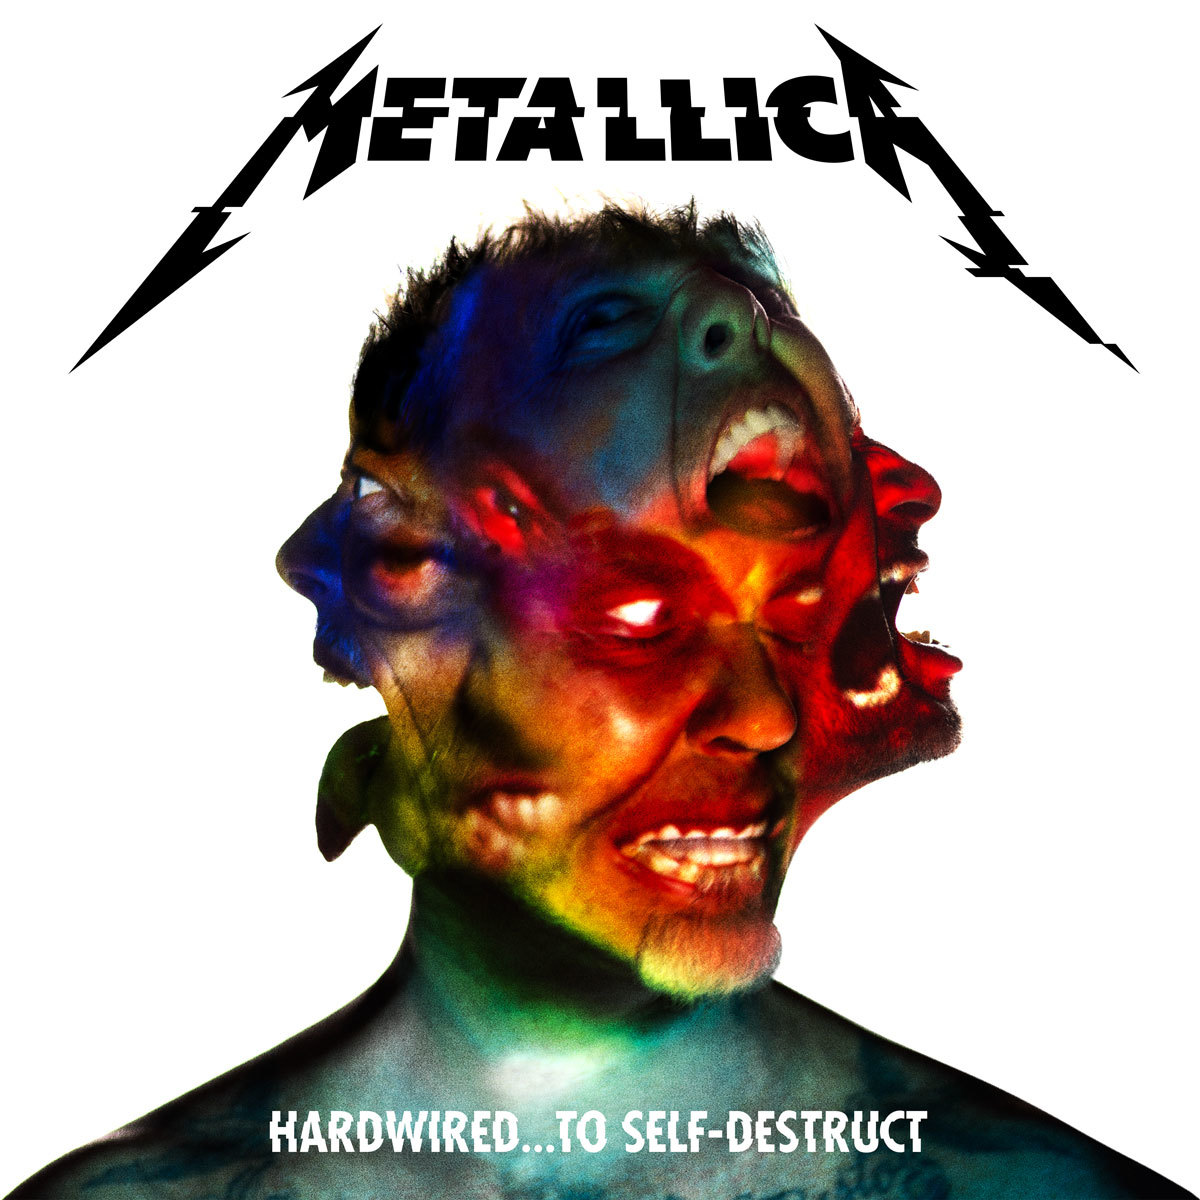 metallica-hardwired-to-self-destruct-cover